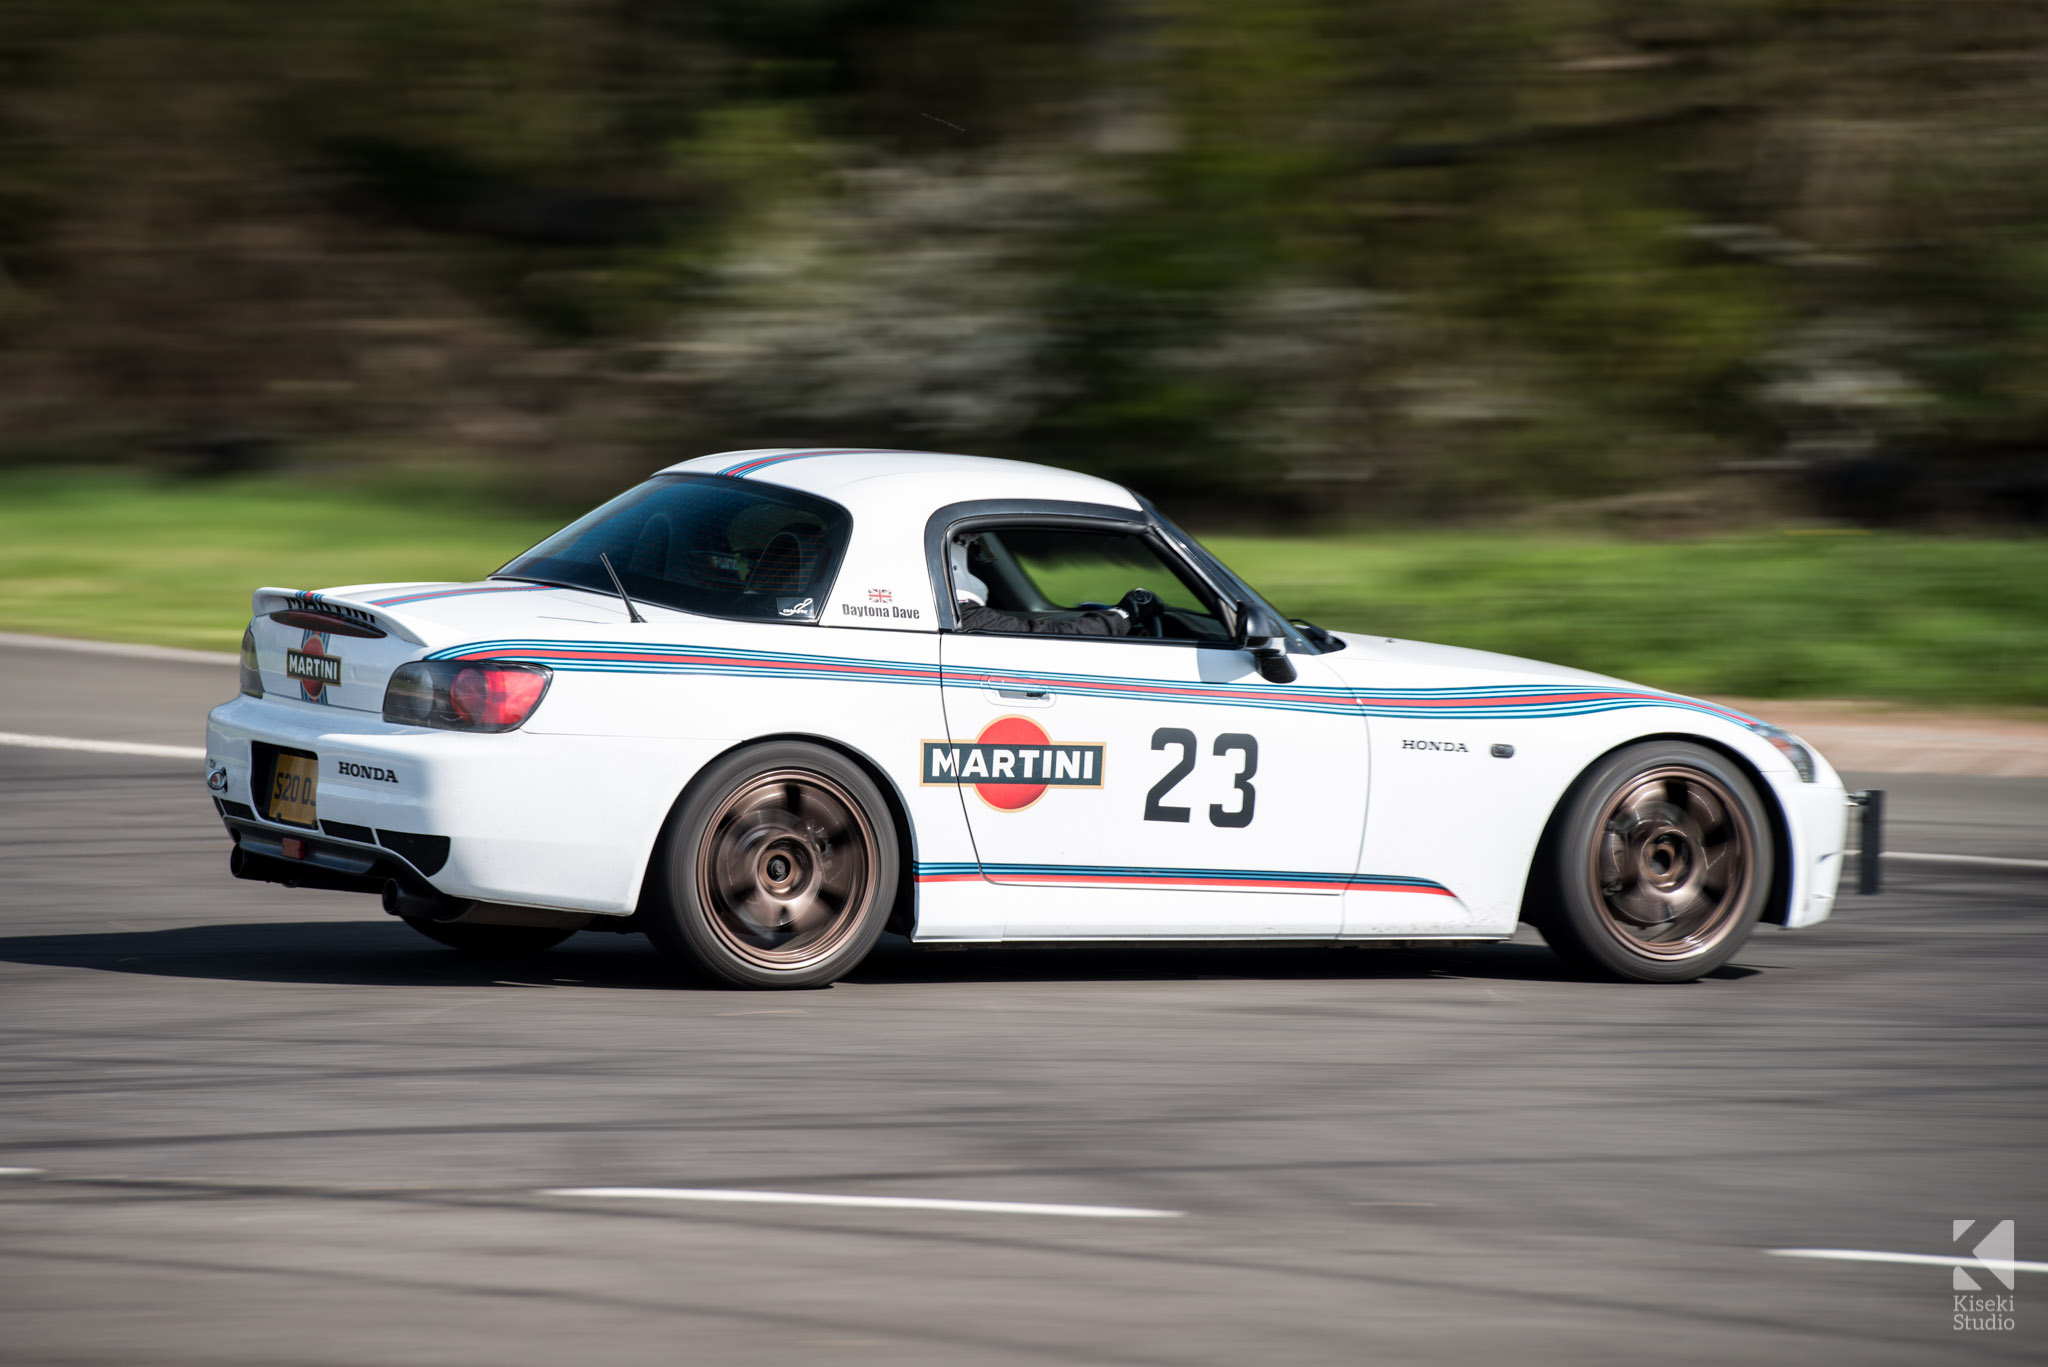 curborough-sprint-honda-s2000-monte-martini-racing